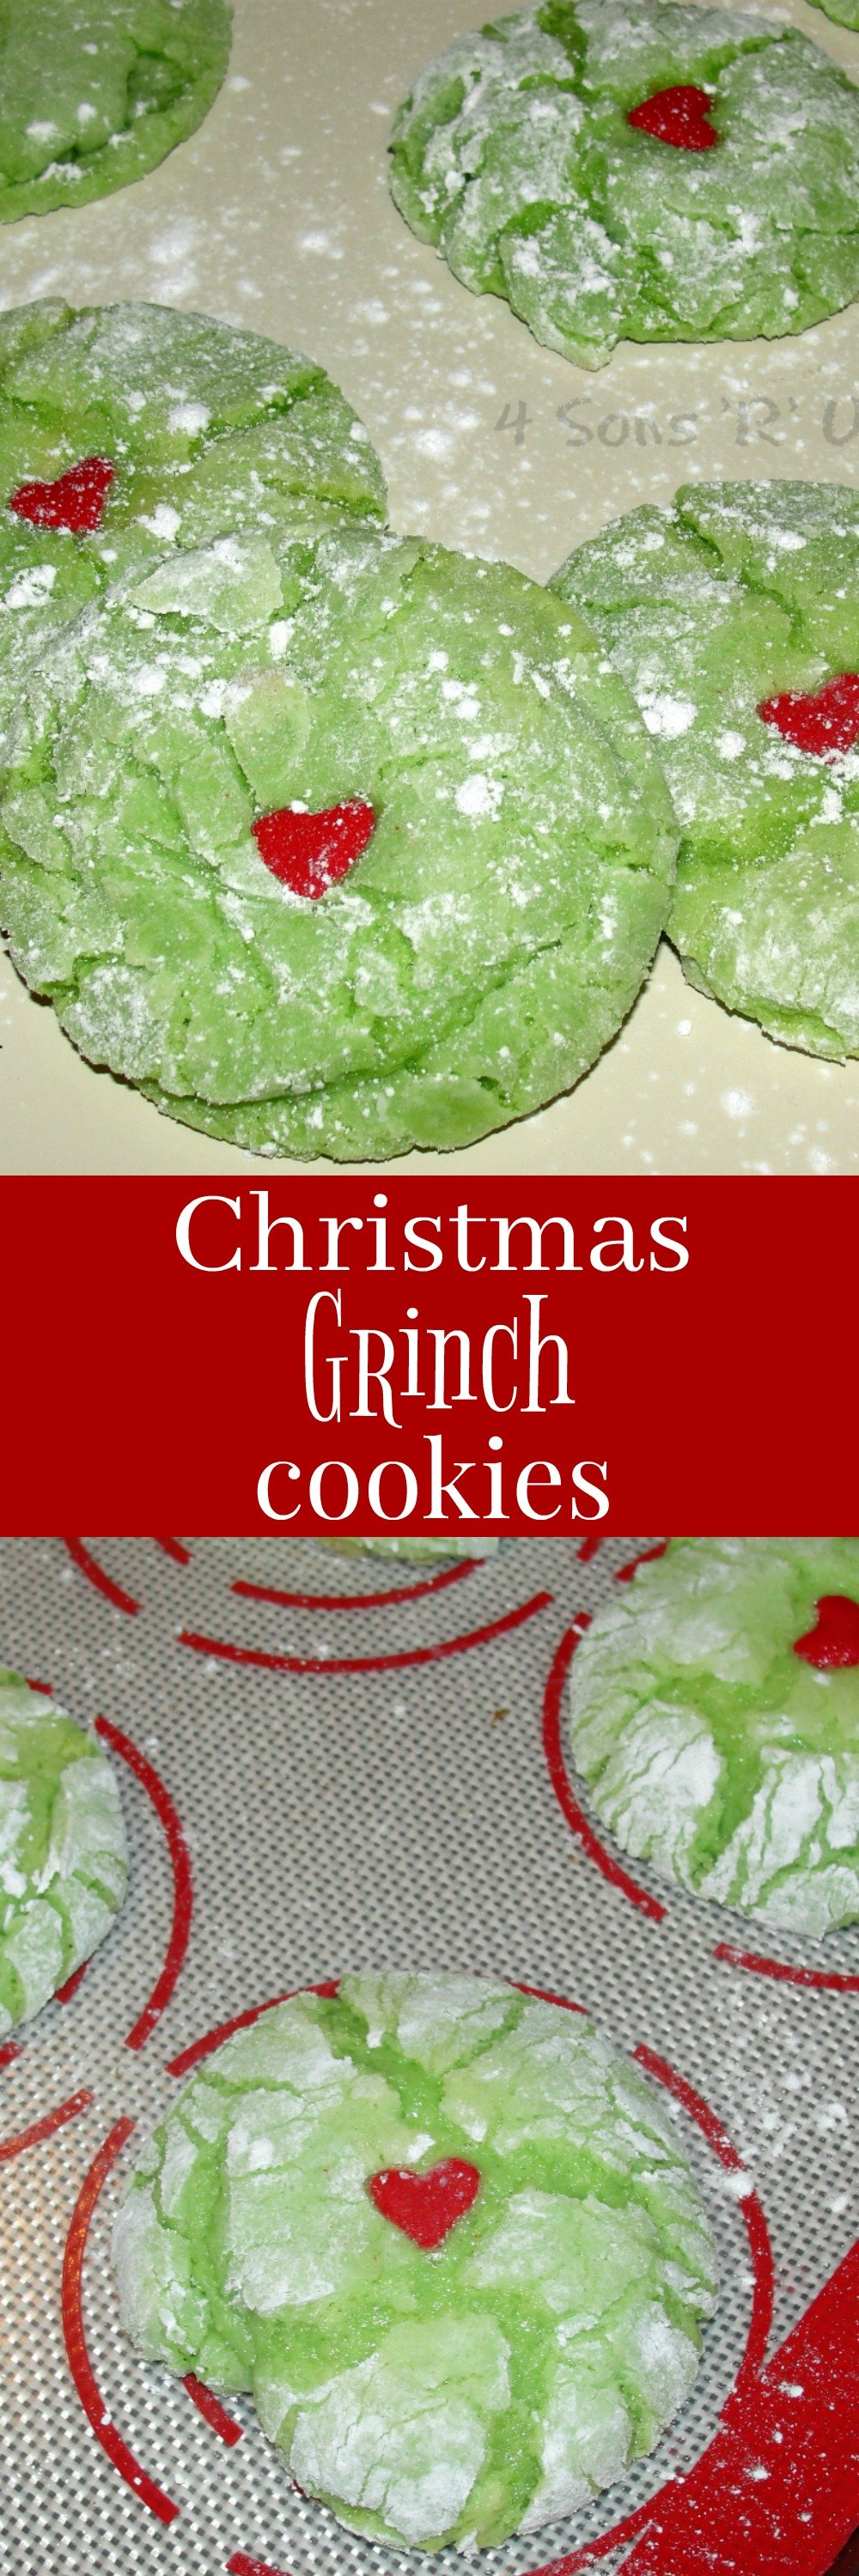 Quick and easy cake cookies are a soft, fluffy, melt-in-your-mouth treat. We've turned these Grinch Cookies green and given them a Grinchy make-over, turning them into fun Christmas-themed snack or dessert.